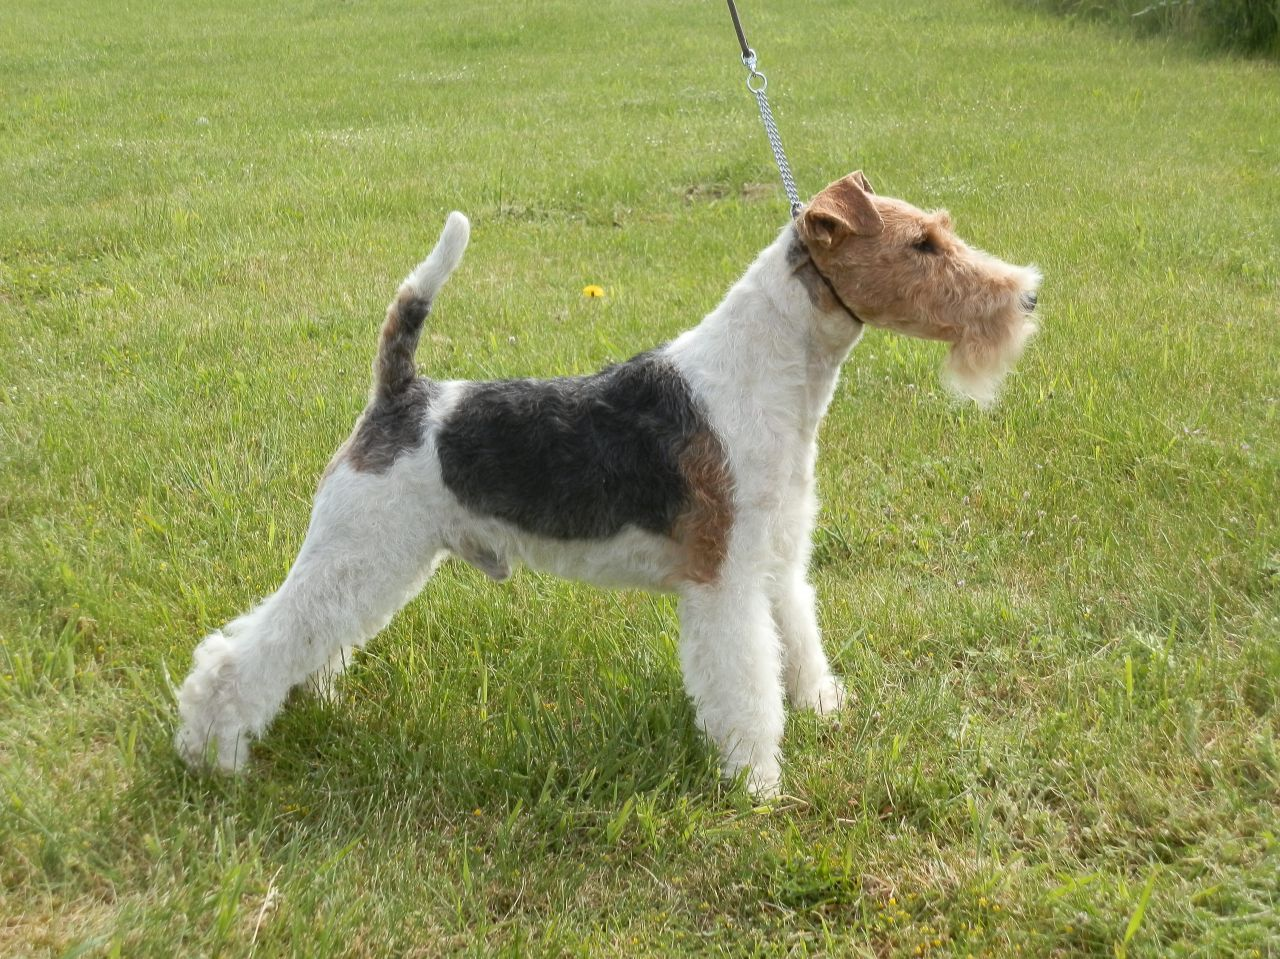 Fox Terrier, Wire Dog: Fox Proven Wire Fox Terrier Dog For Stud Kc Registered Grantham Breed